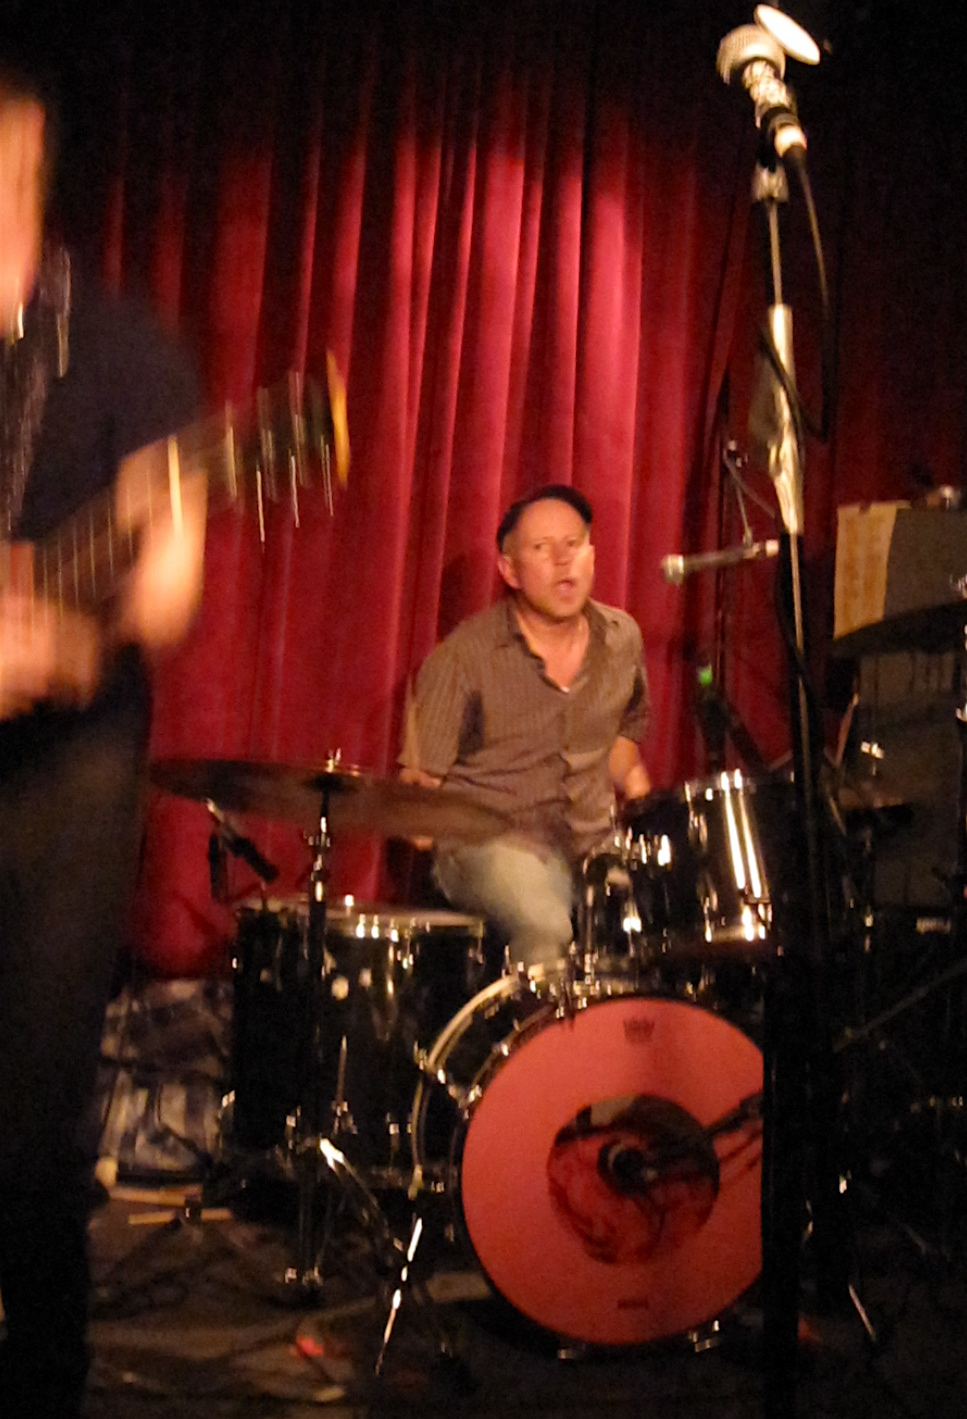 Frank Giannini on drums.